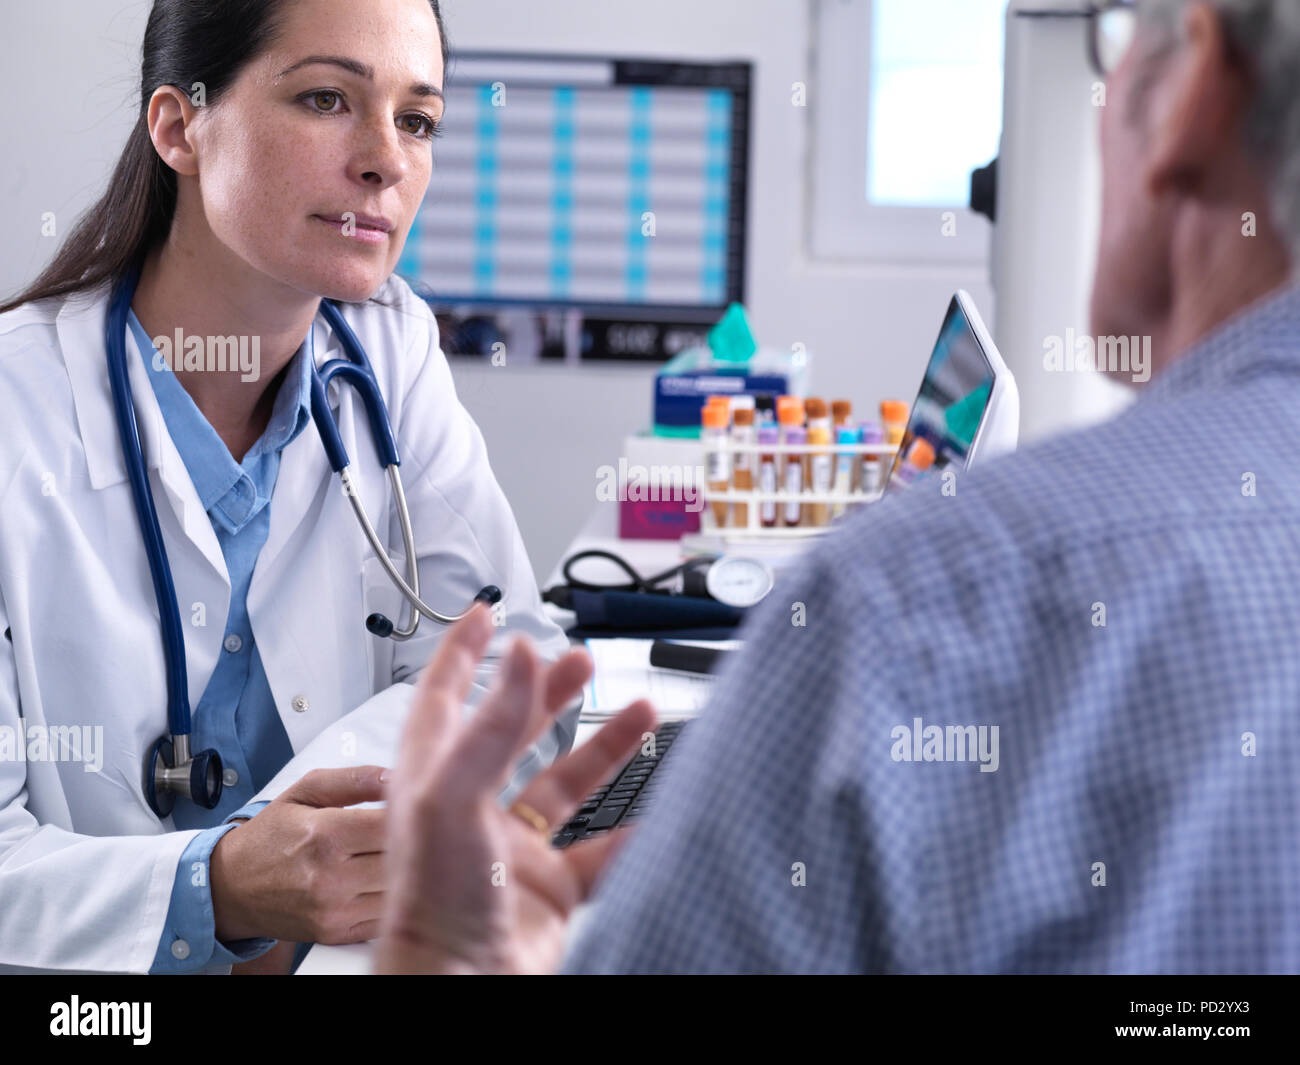 Doctor listening to a patients concerns during a check up in the clinic - Stock Image